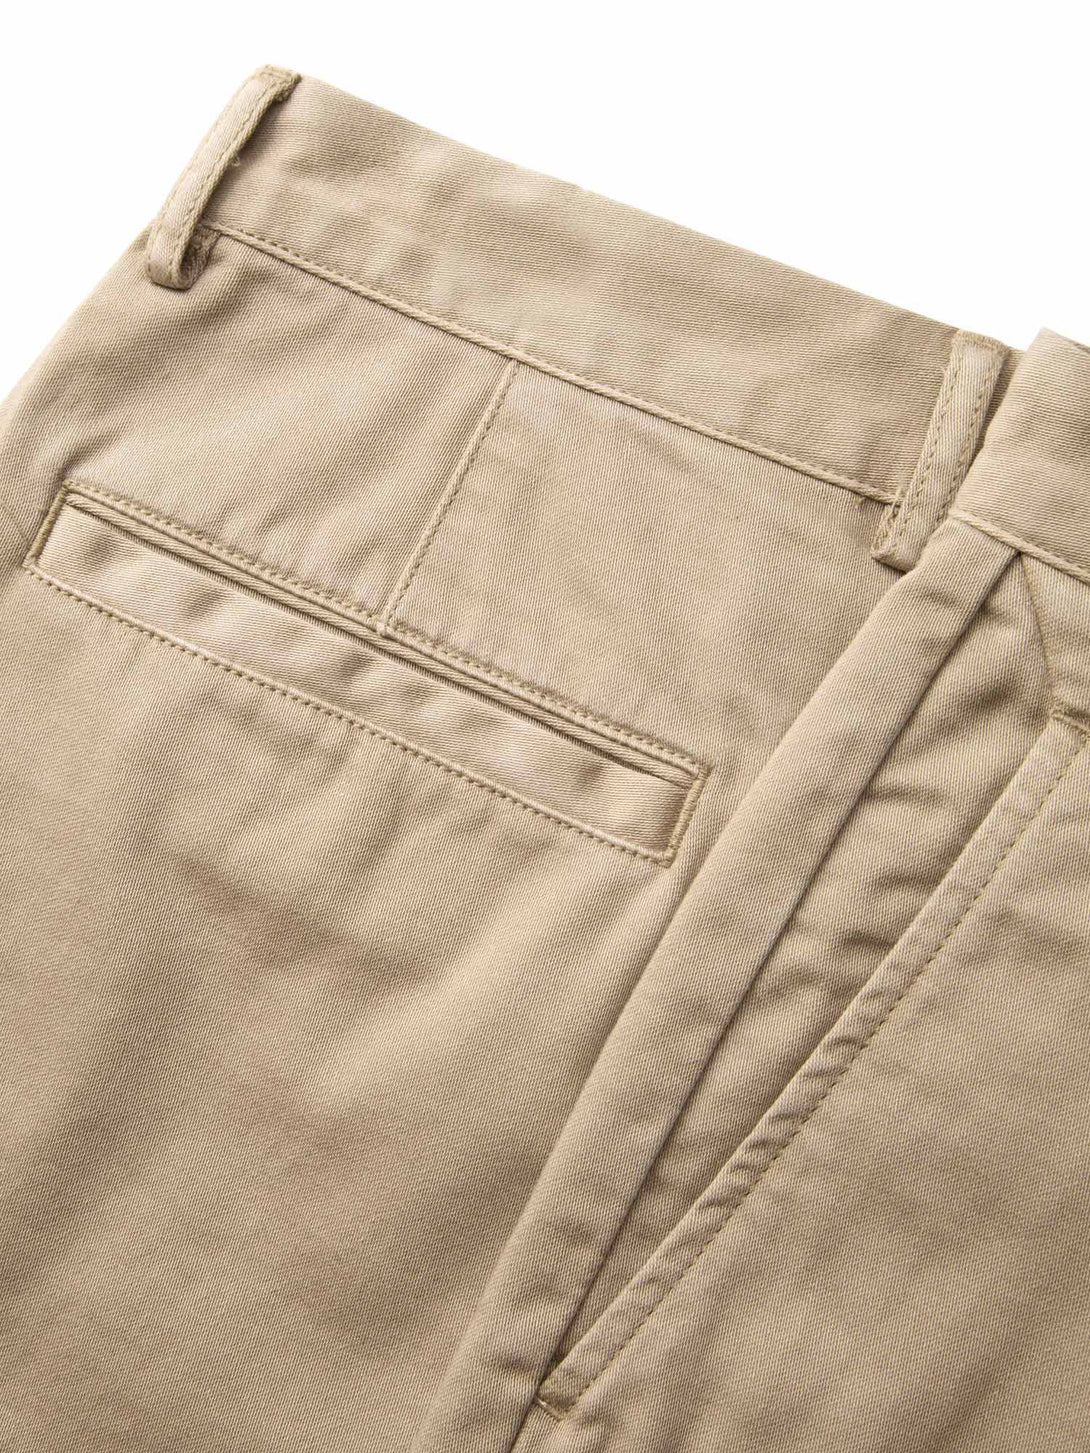 ons garage men's shorts KHAKI